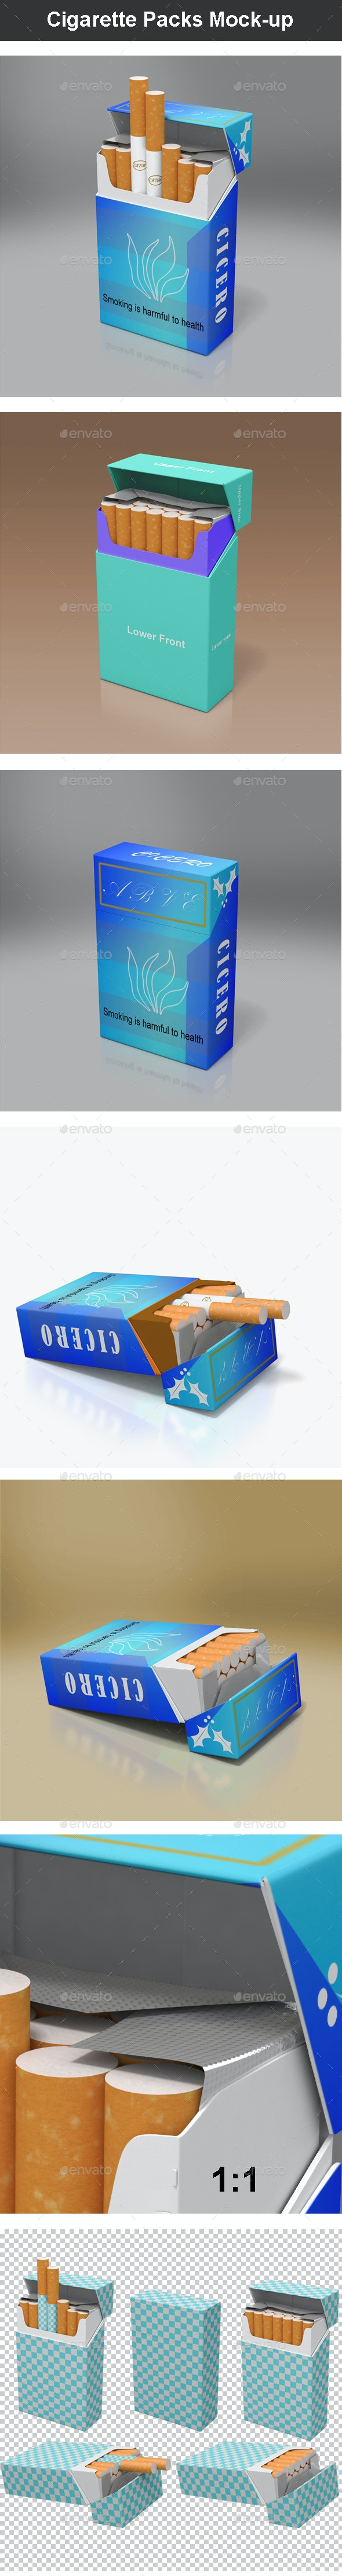 Cigarette Packs Mock-up - Miscellaneous Packaging